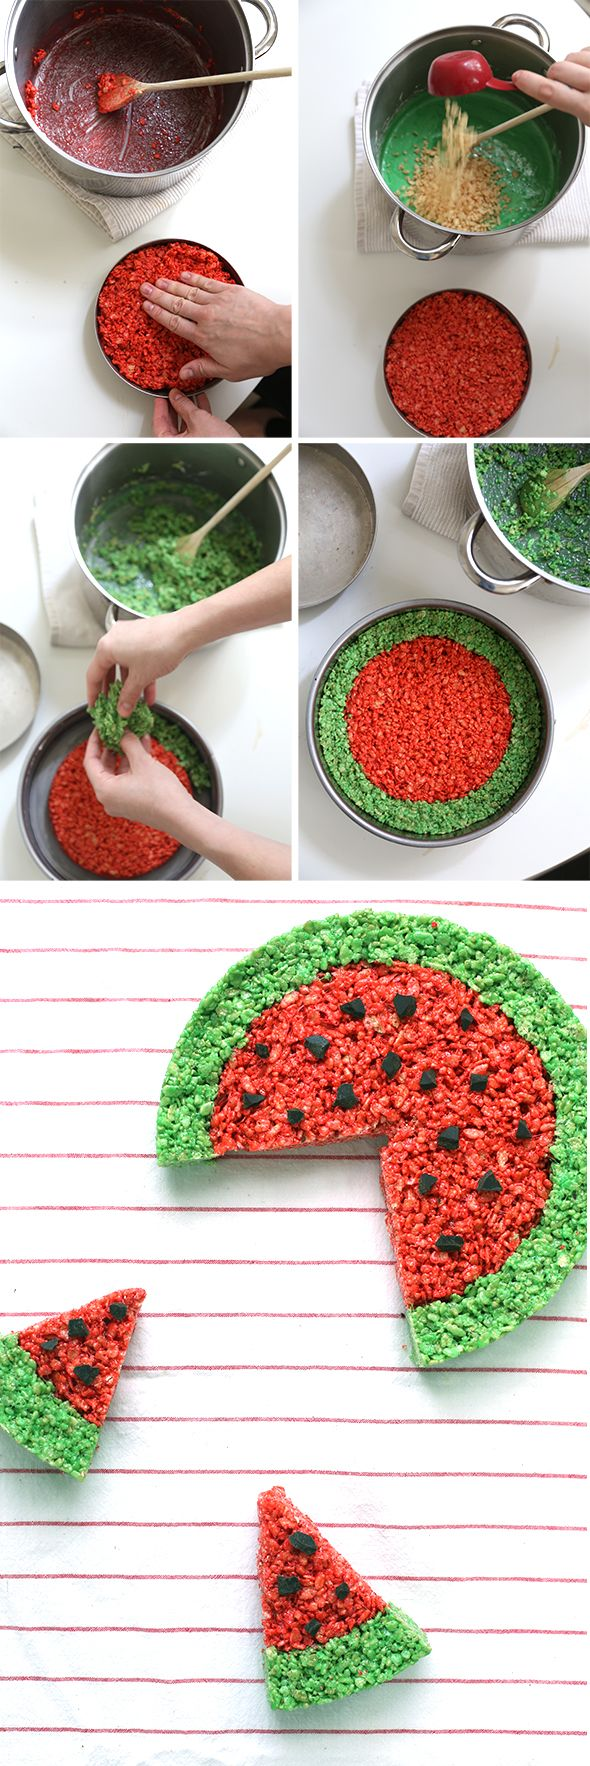 What a fabulous idea! So cute and best part, no baking!